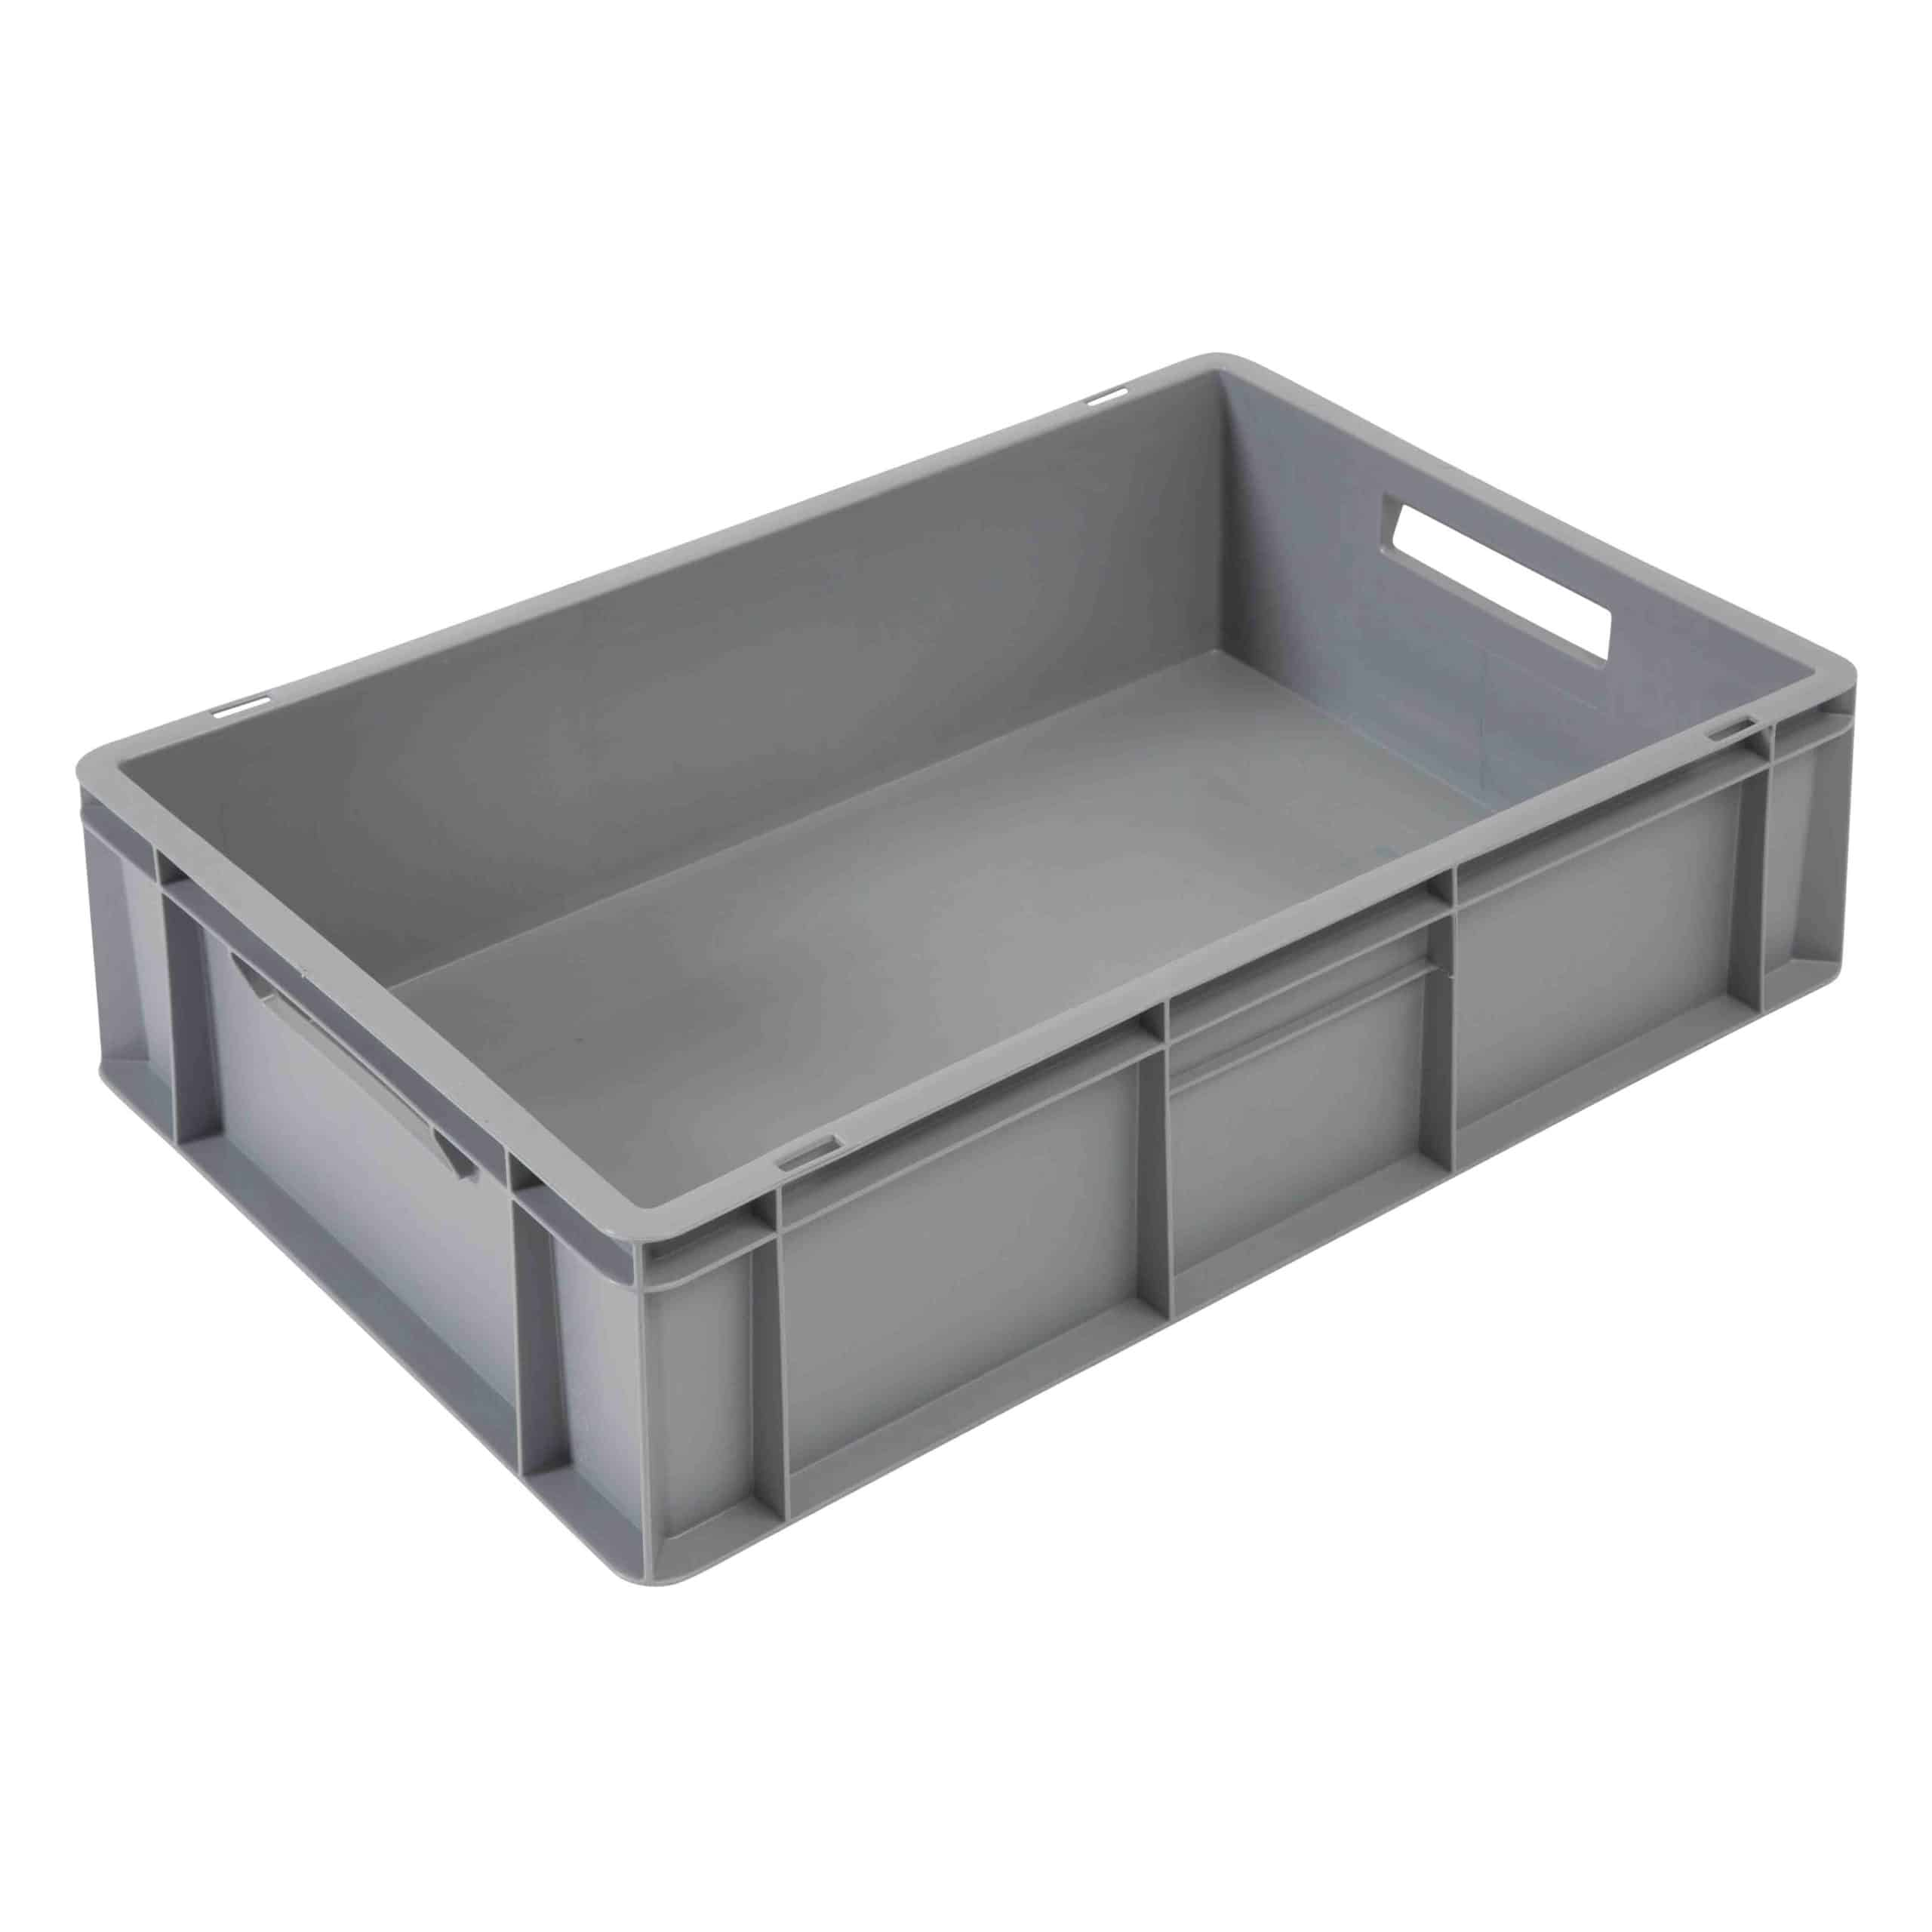 30 Litre Euro Containers